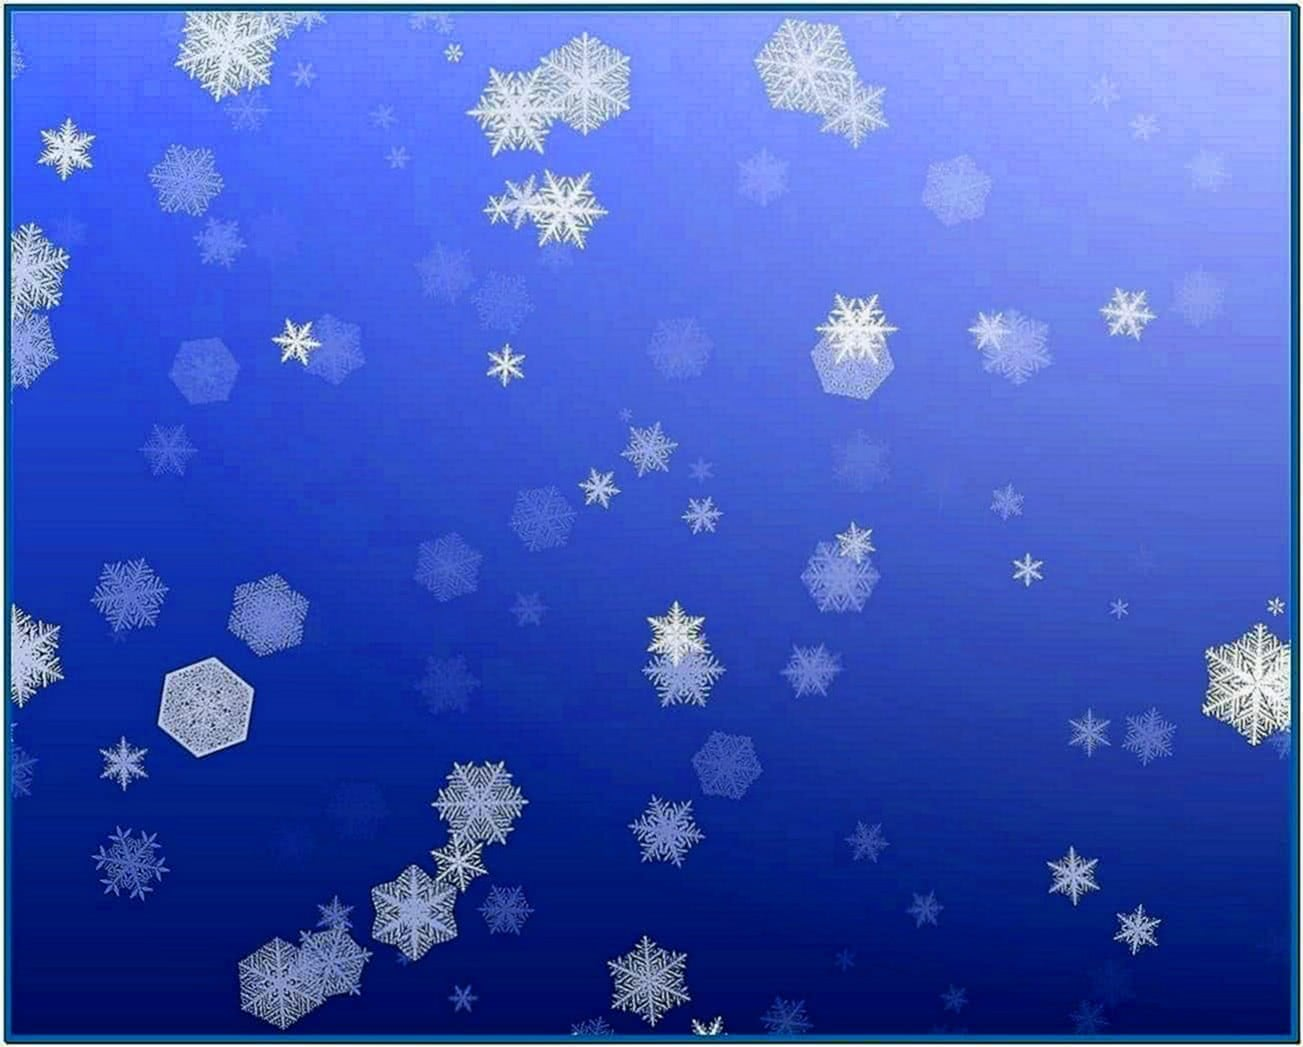 Screensaver Snow Falling